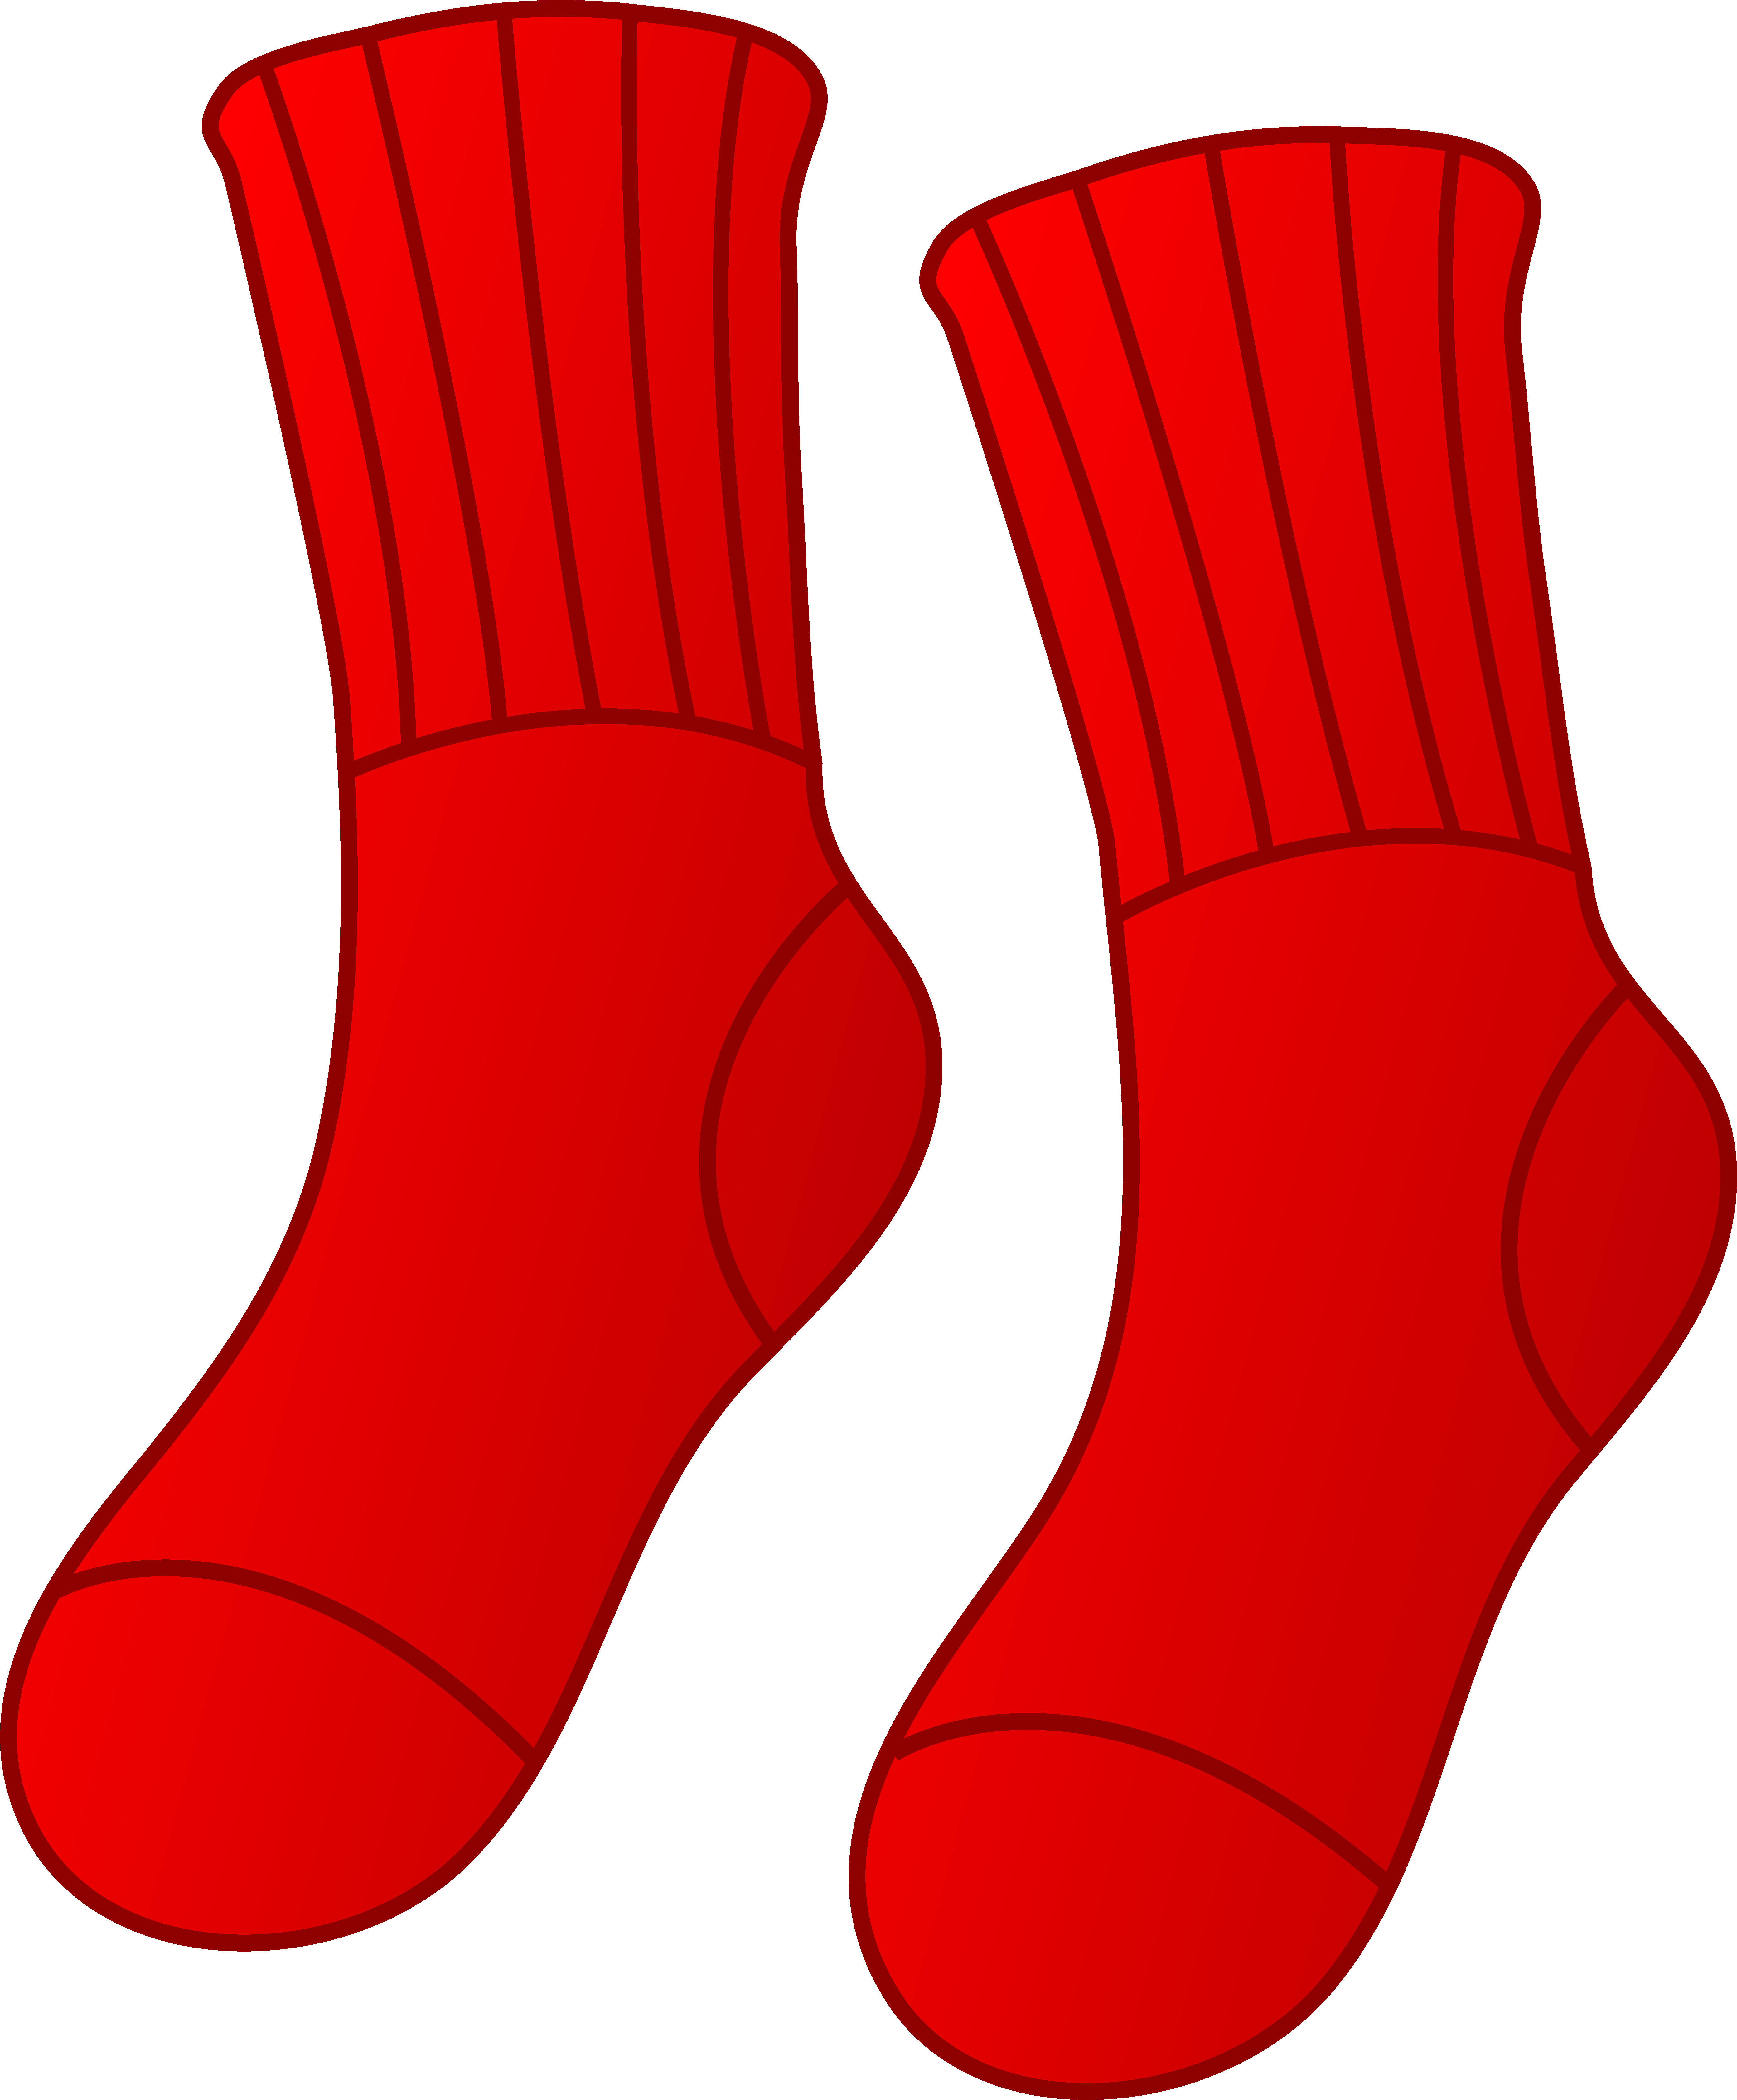 Red Socks Clip Art | Clipart Panda - Free Clipart Images